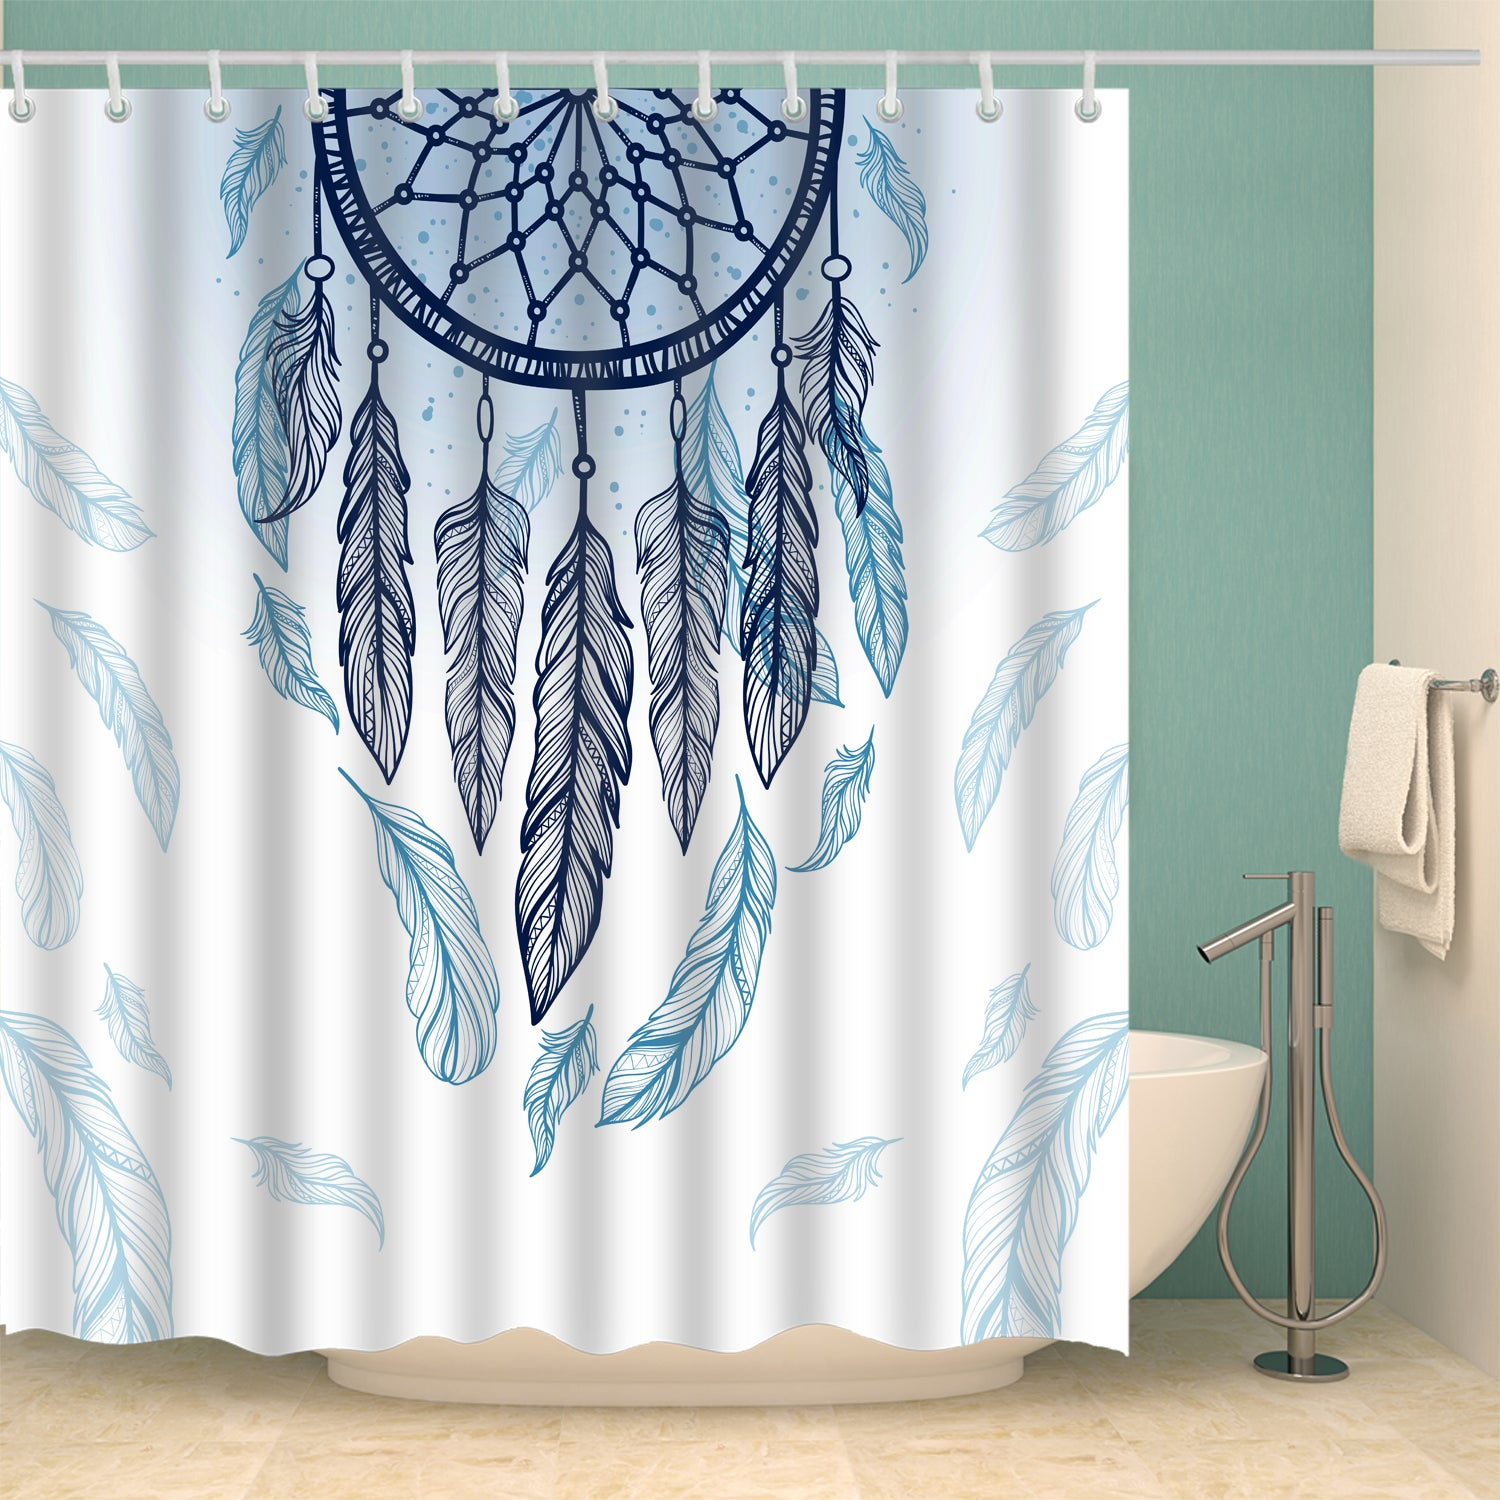 Ethnic Style Dream Catcher With Feathers Shower Curtain